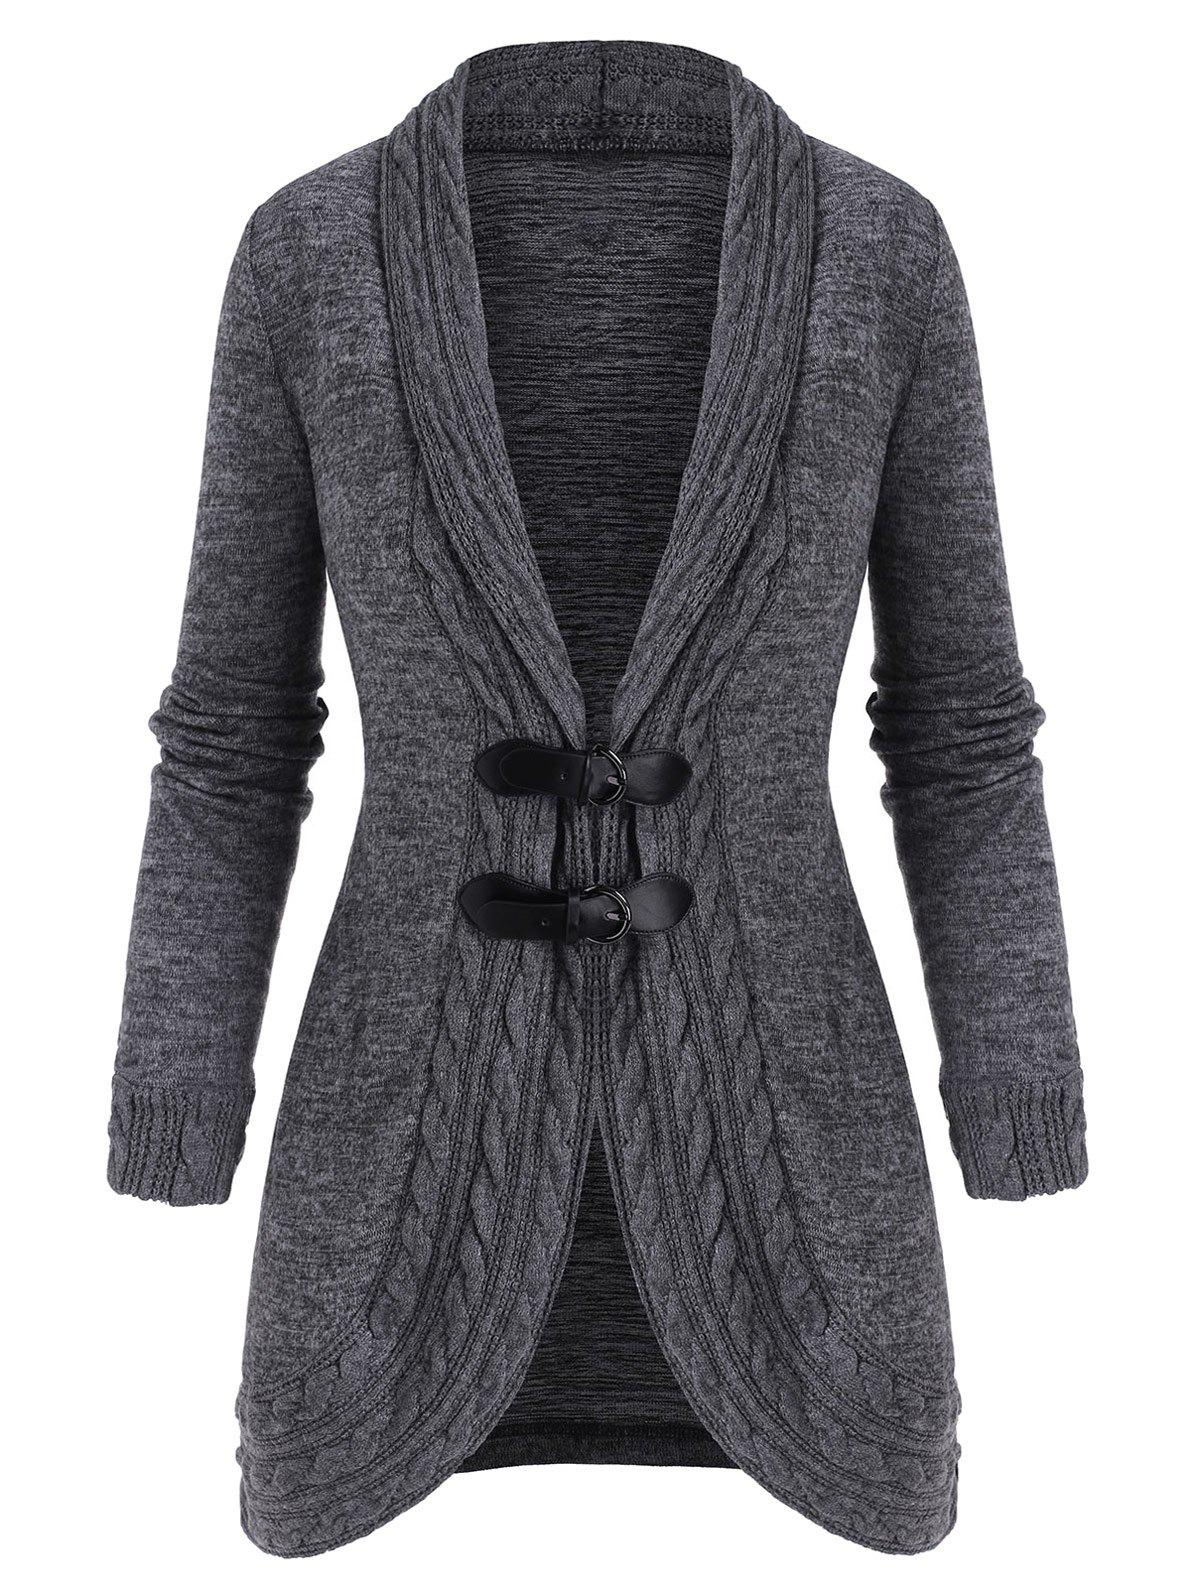 Shawl Collar Buckled Cable Knit Heathered Cardigan - GRAY 2XL